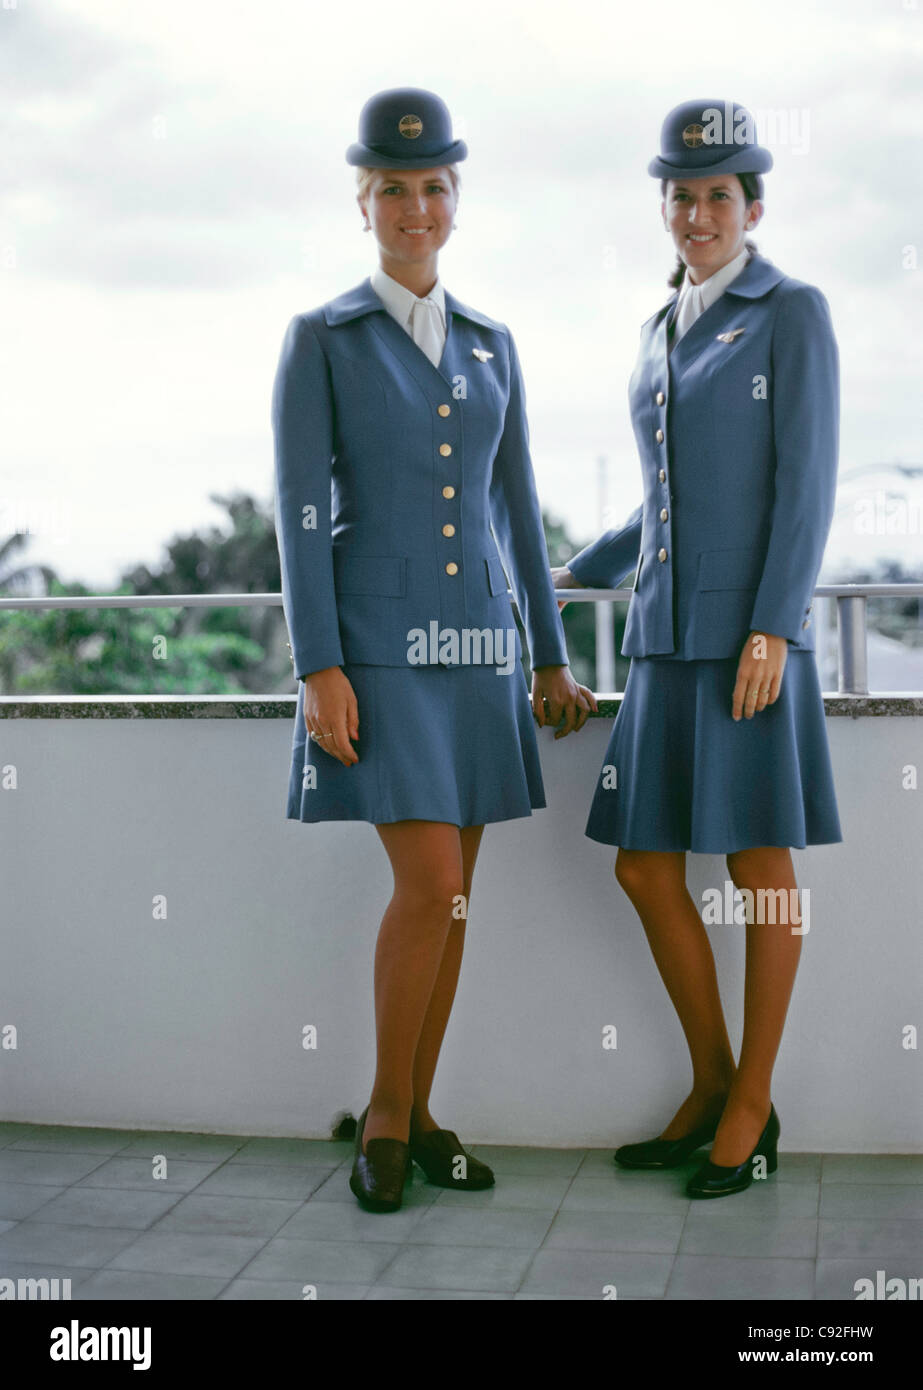 Two 1970's Pan Am Stewardesses In Uniform, Cheryl Acrey (L) and Patti McConville (R) - Stock Image